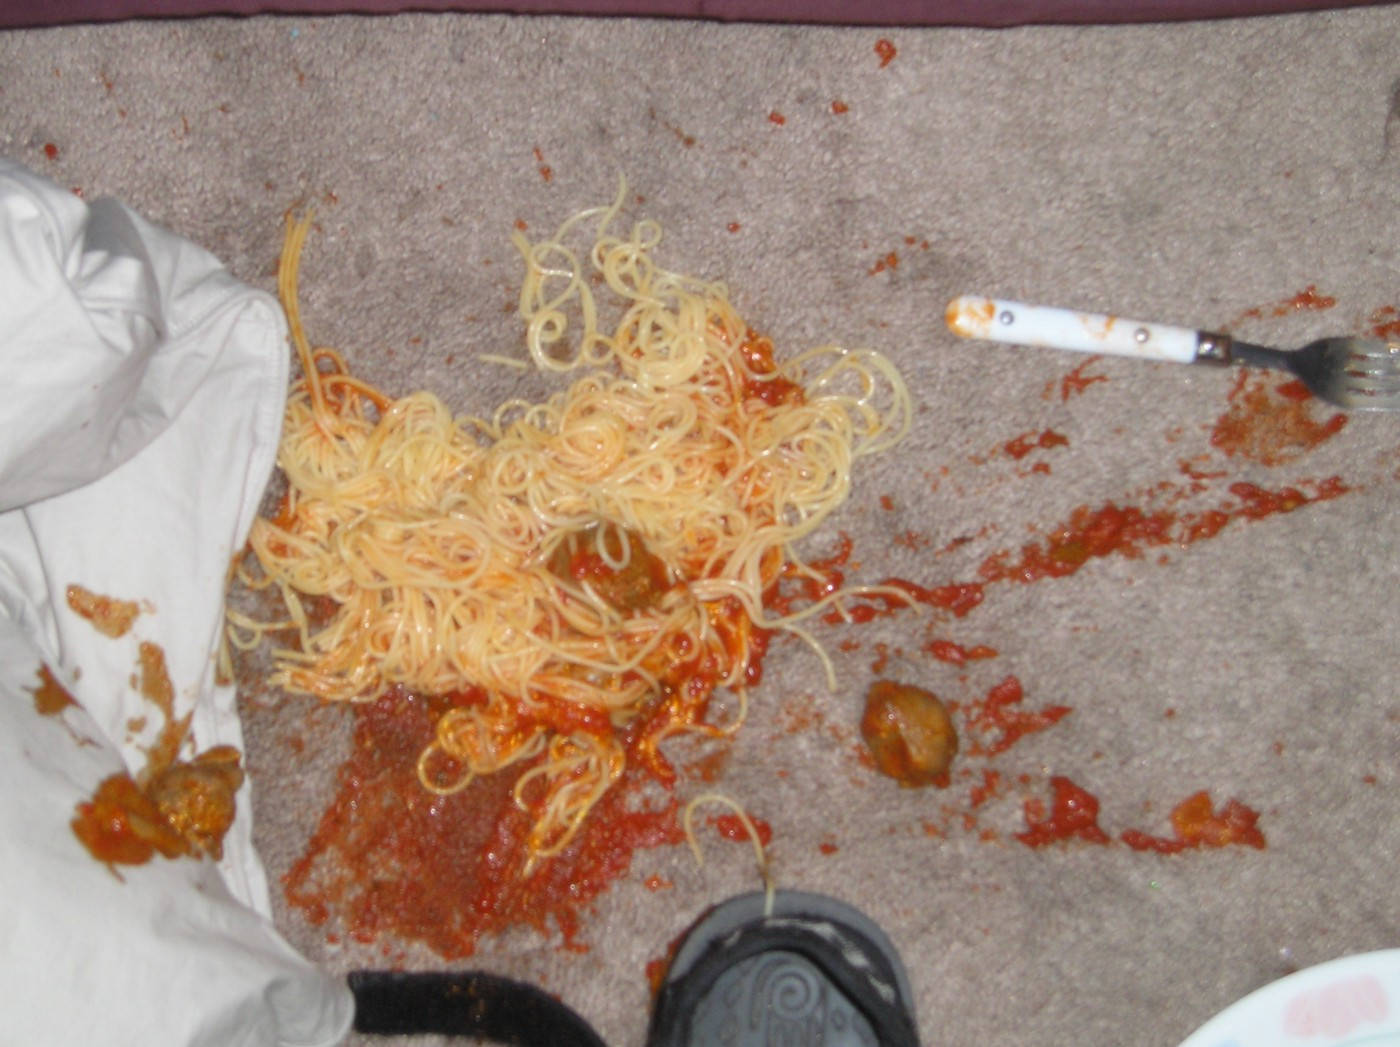 Spilled spaghetti with a fork on a cement floor